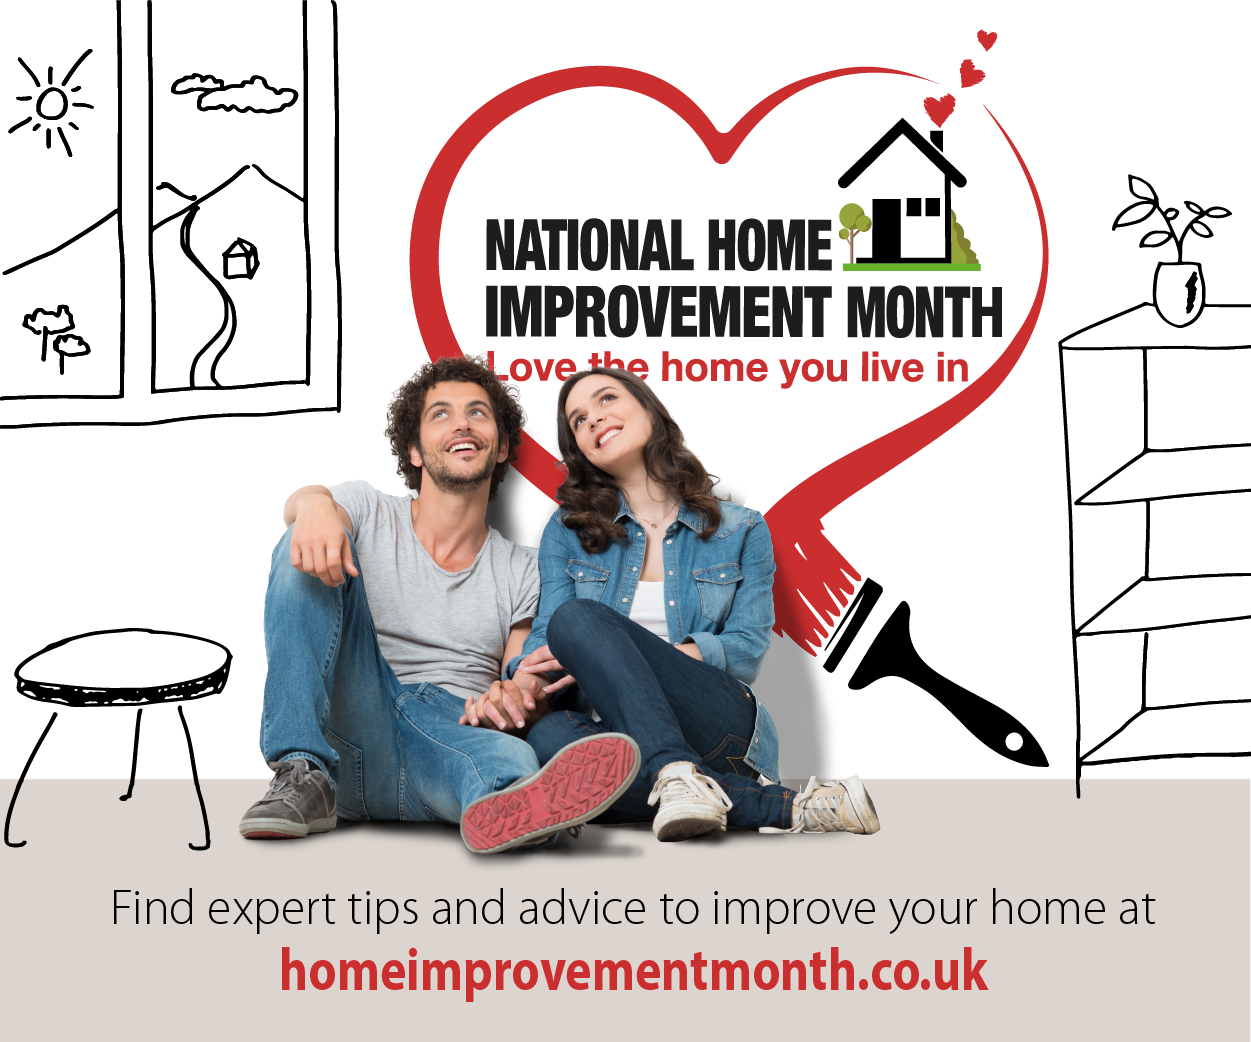 September is National Home Improvement Month